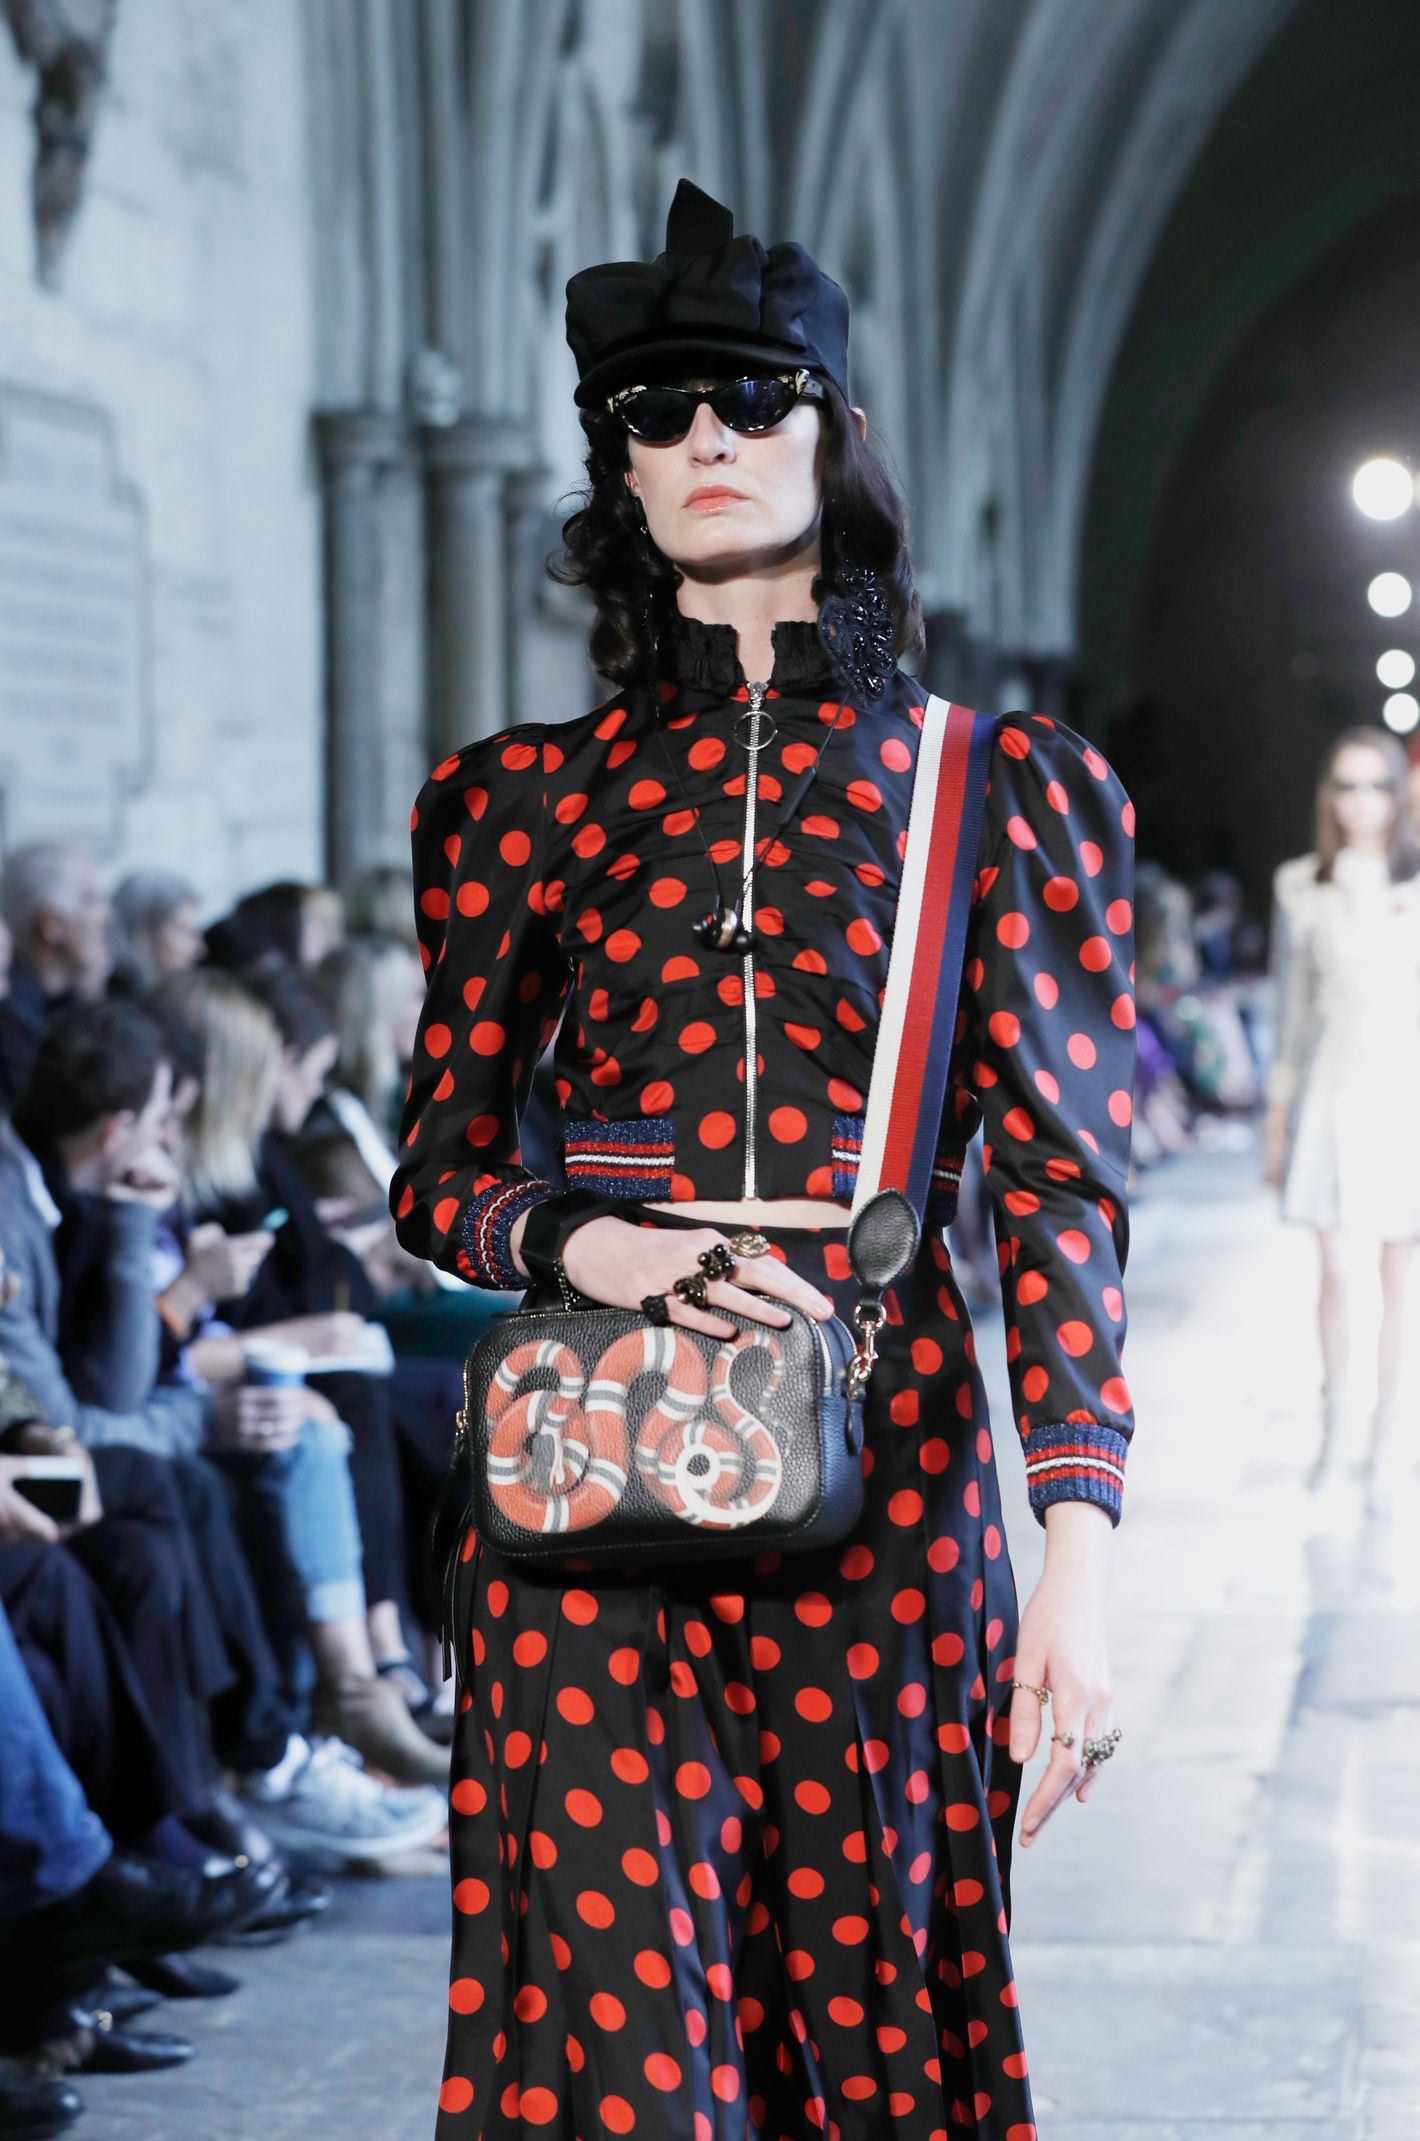 db8376d3572 Everything You Need to Know About Today s Gucci Cruise Show